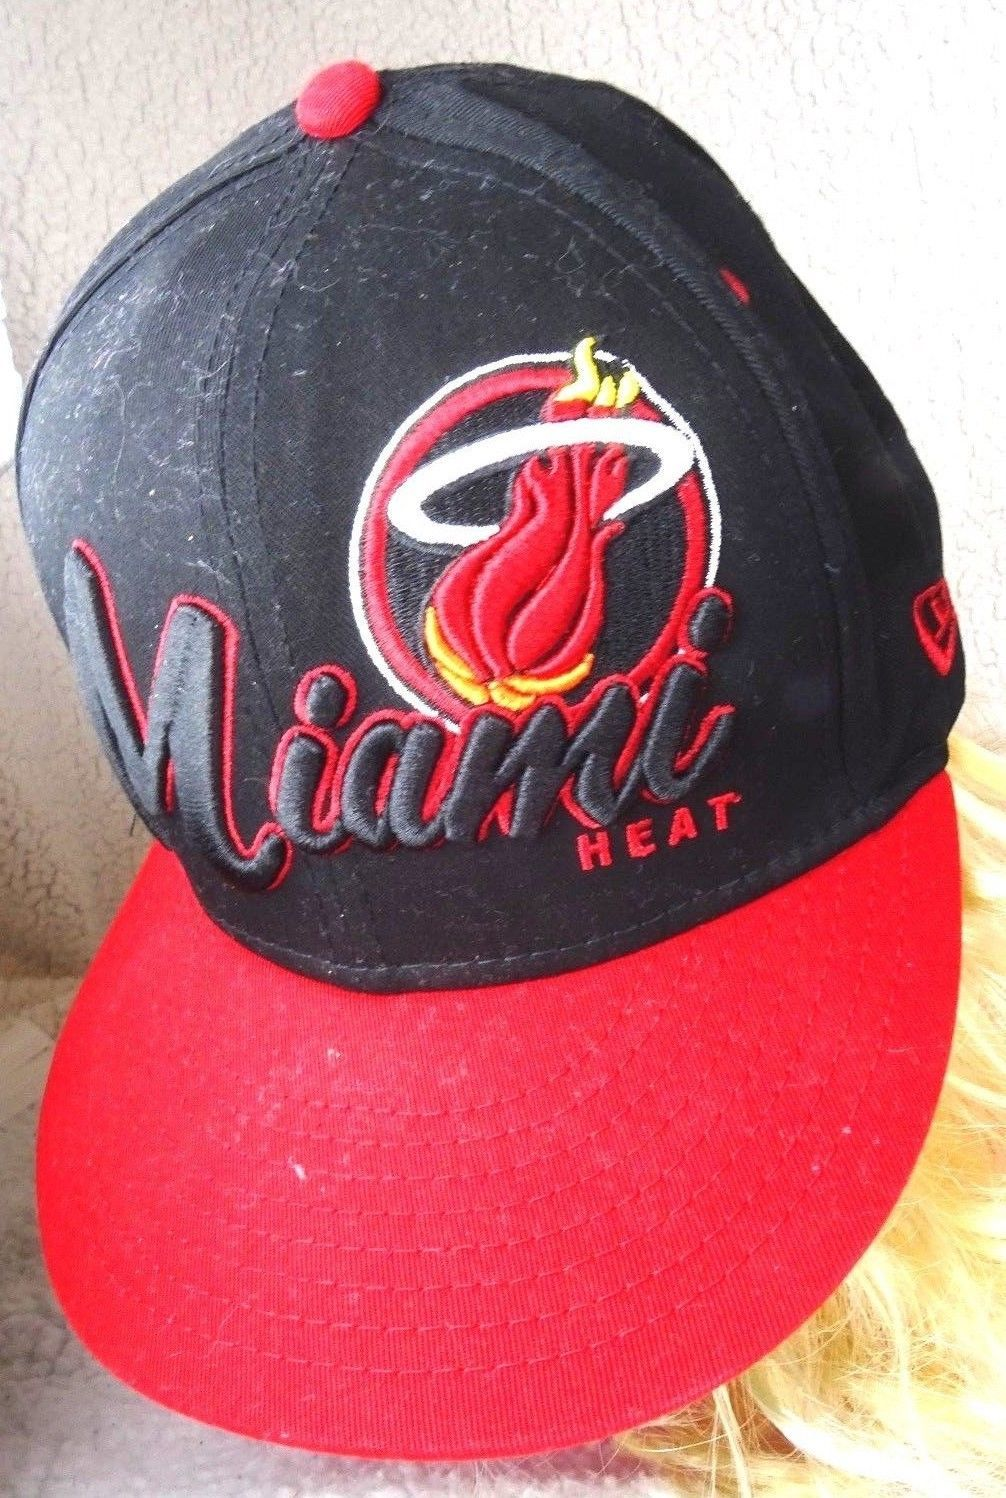 new style abf45 f6db3 57. 57. Previous. New Era Nostalgia Co. Snapback NBA Miami Heat Basketball  Hat Baseball Cap Wool